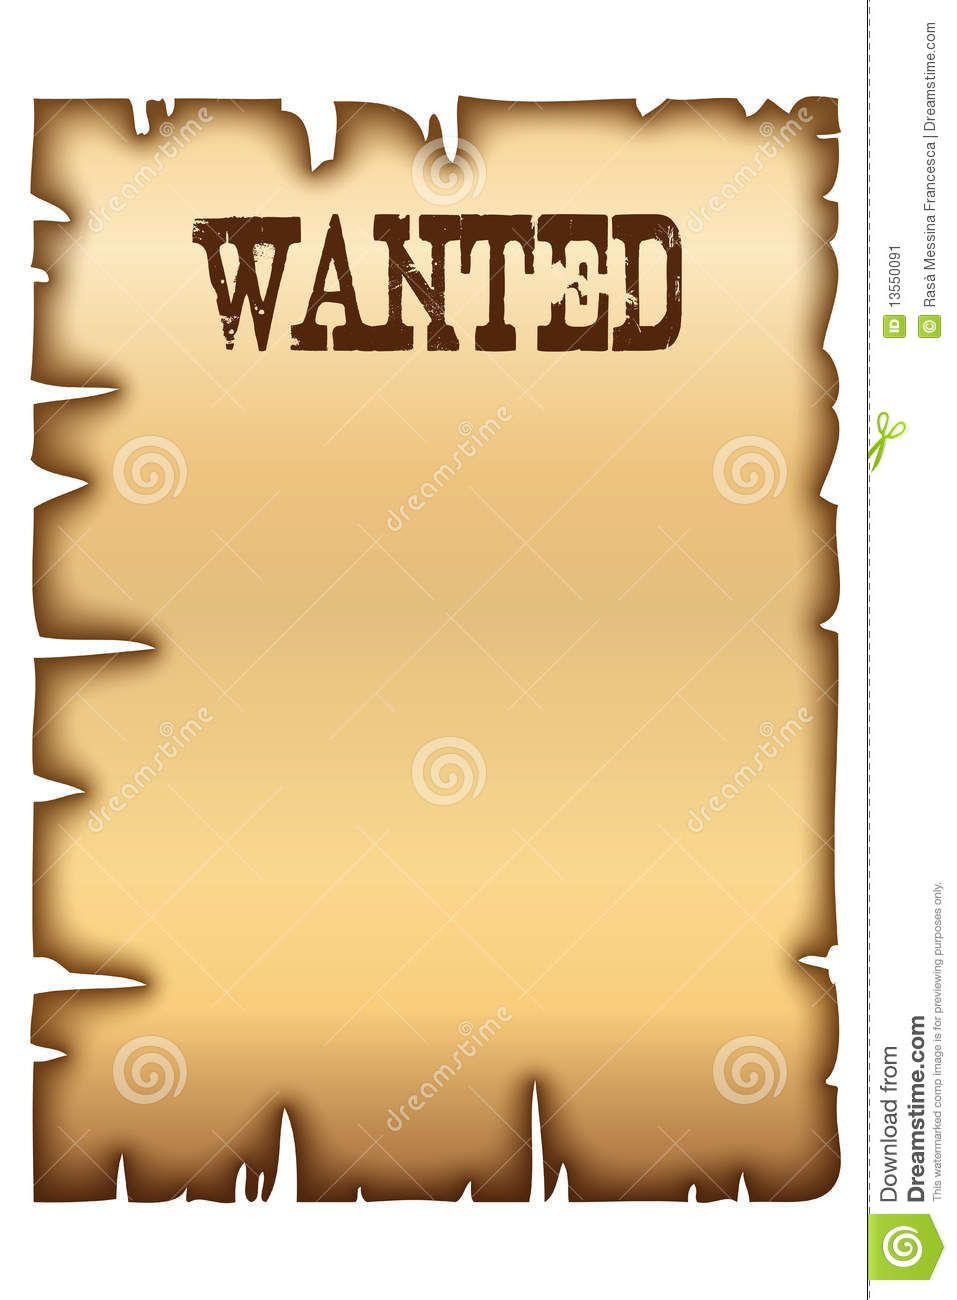 004 Wonderful Wanted Poster Template Microsoft Word High Definition  Western MostFull